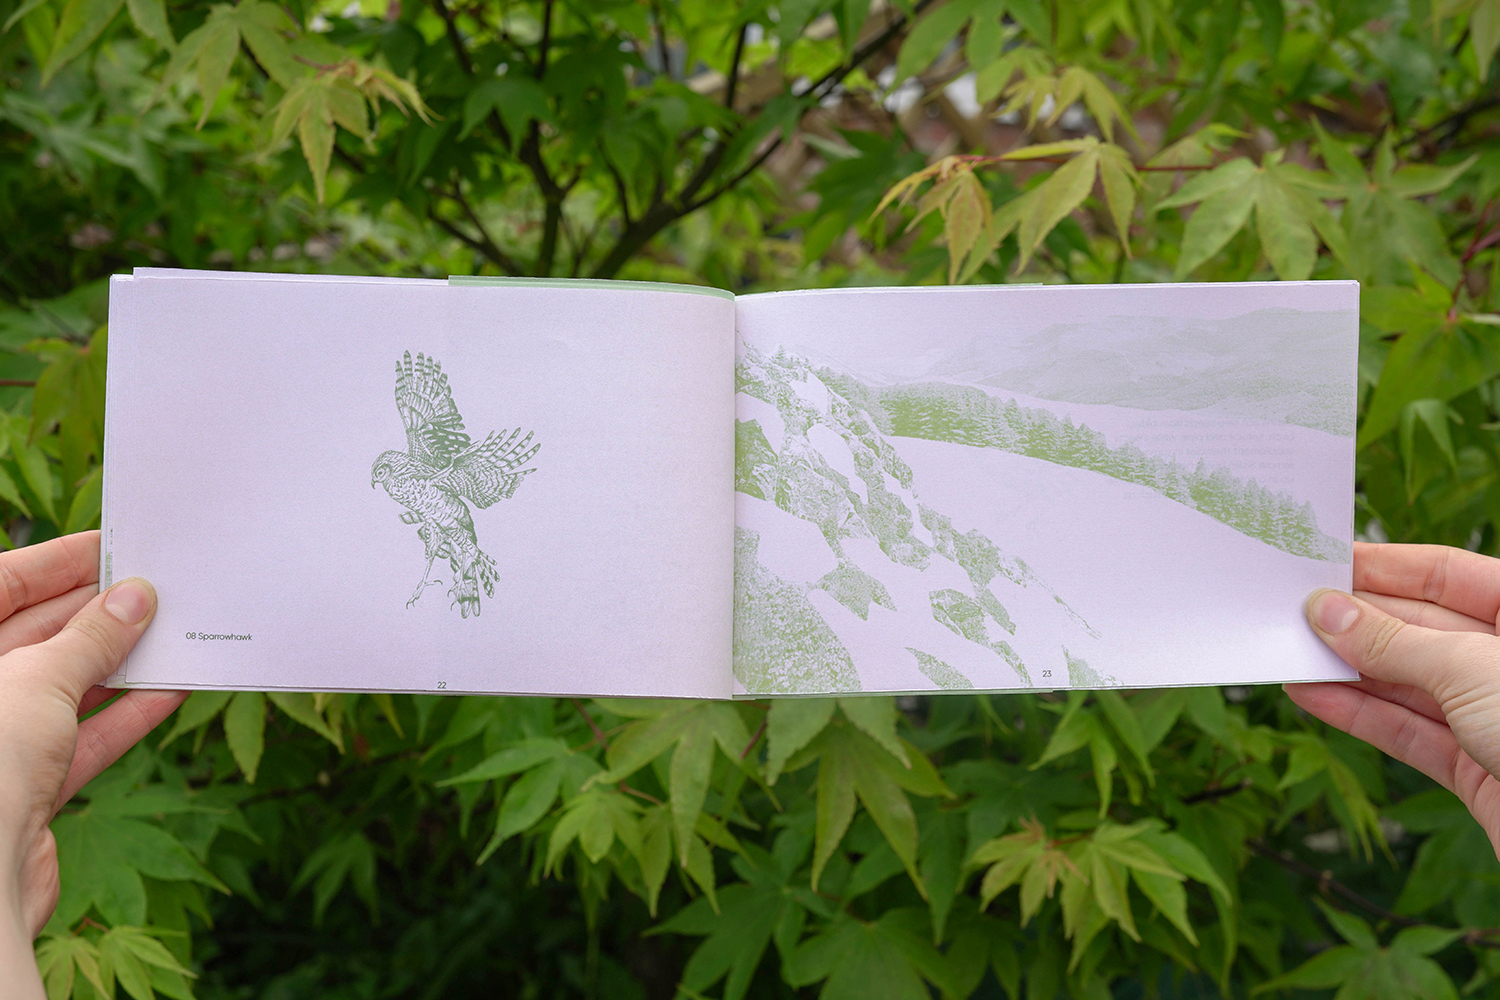 Sparrowhawk Illustration in green, in front of leaves background